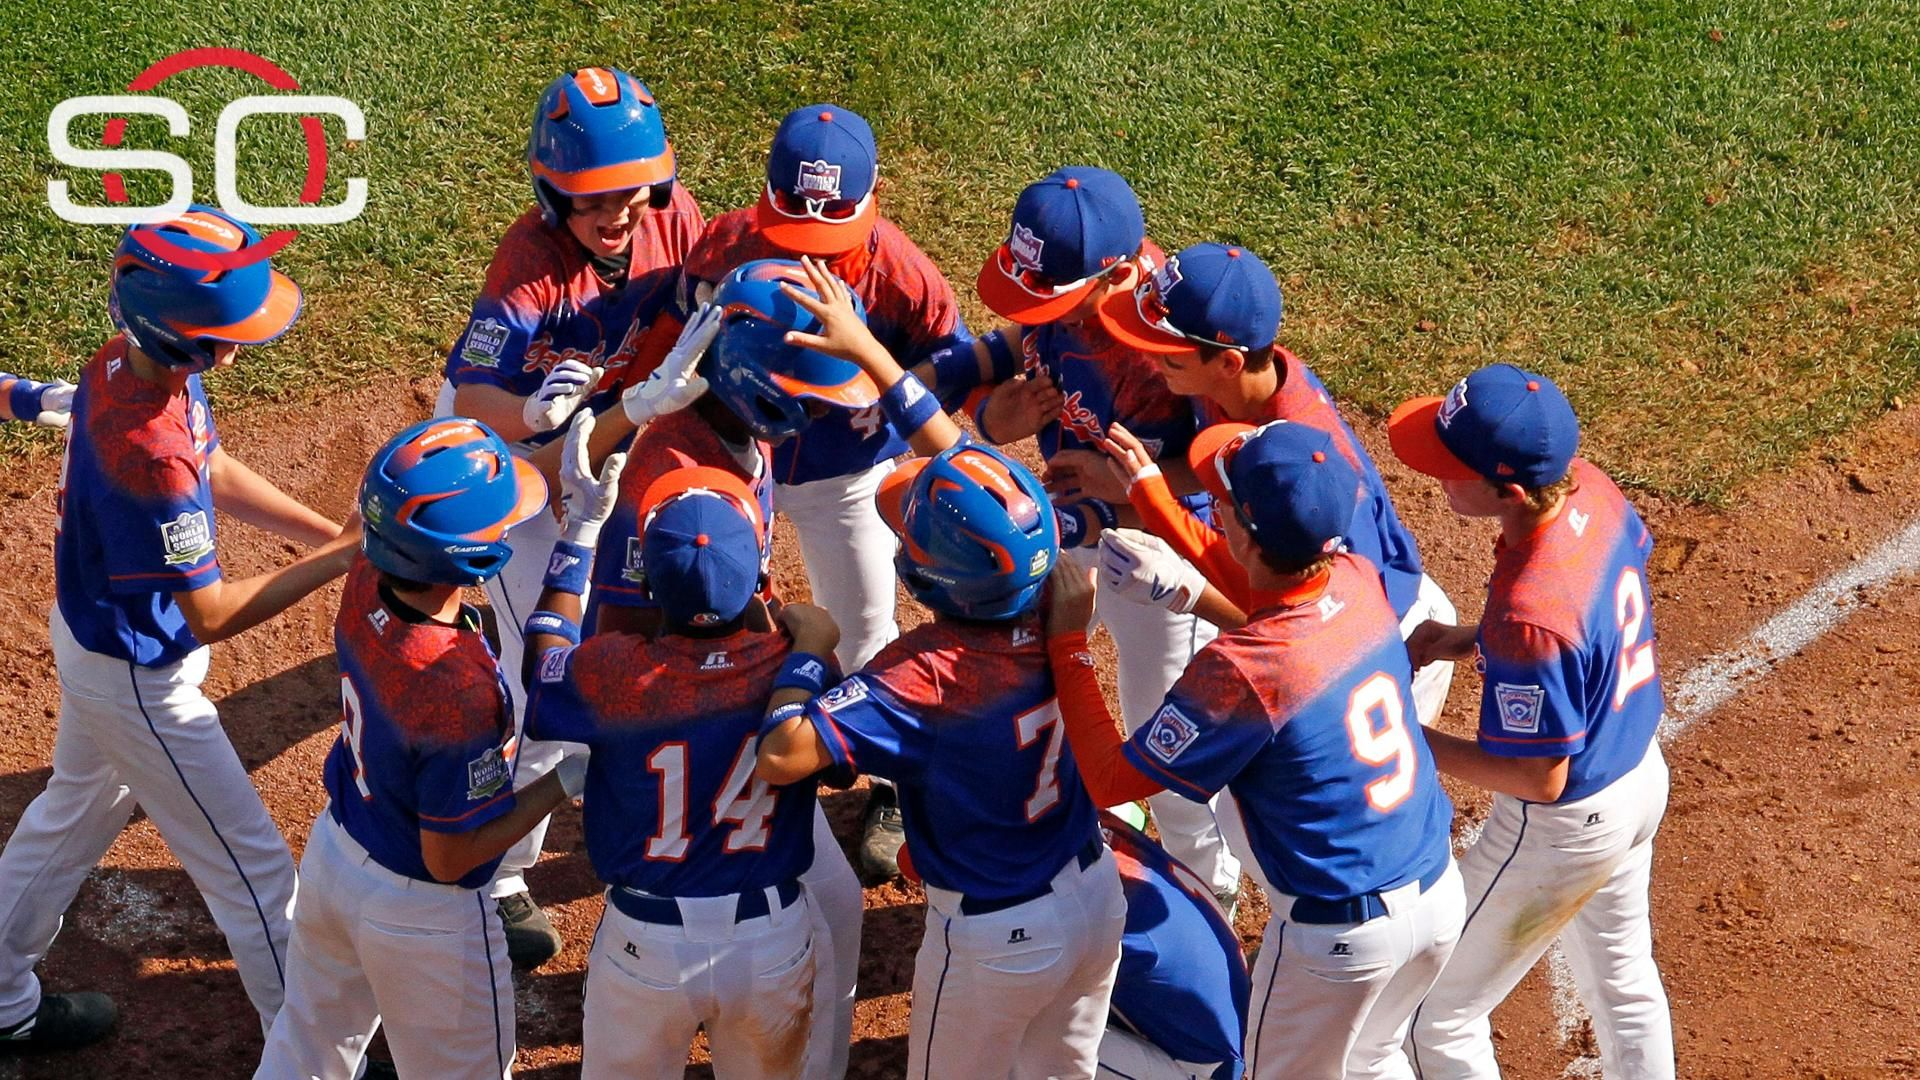 Kentucky avoids elimination with LLWS win over Oregon